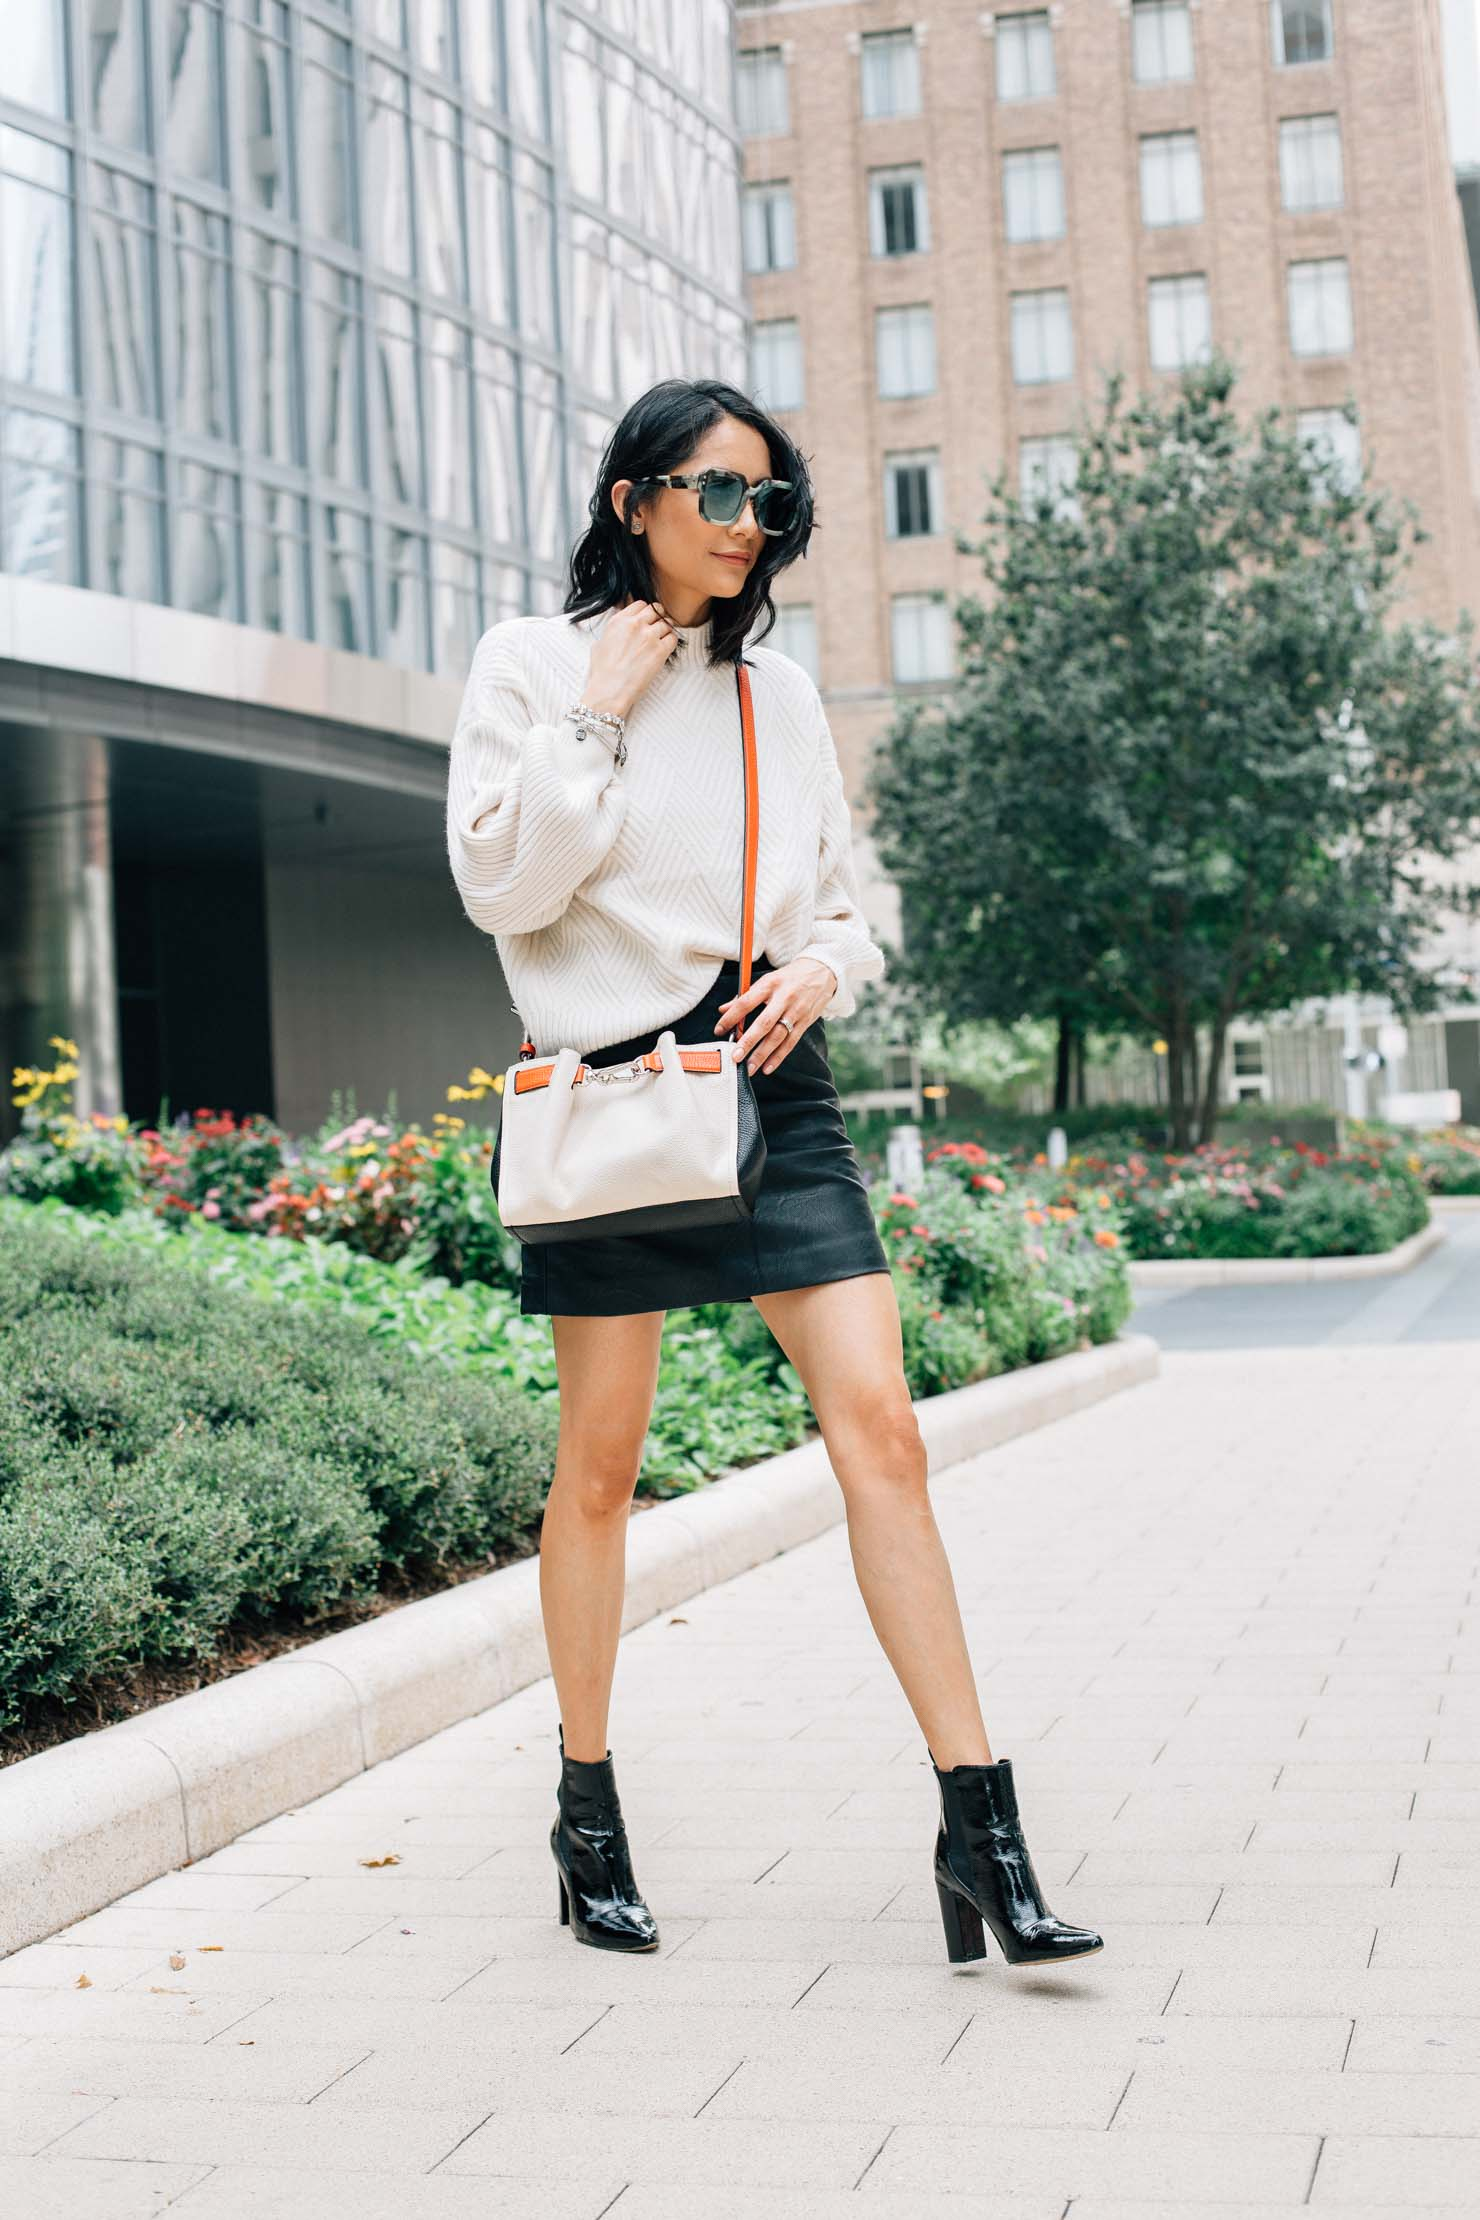 Lilly Beltran wearing a leather mini skirt with black patent leather booties